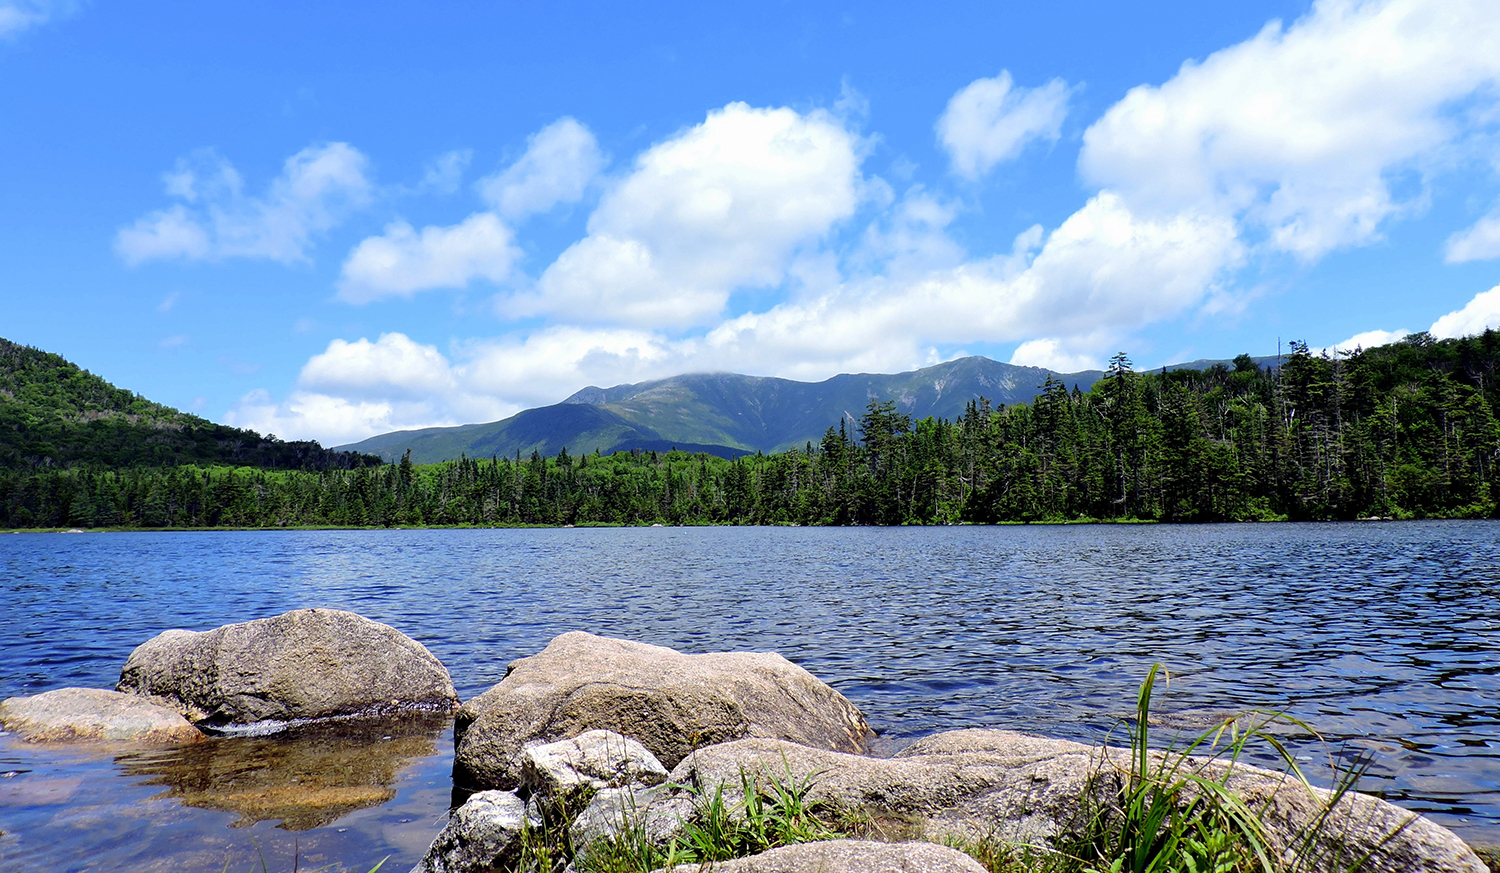 Scenic shot of NH lake with mountains in background